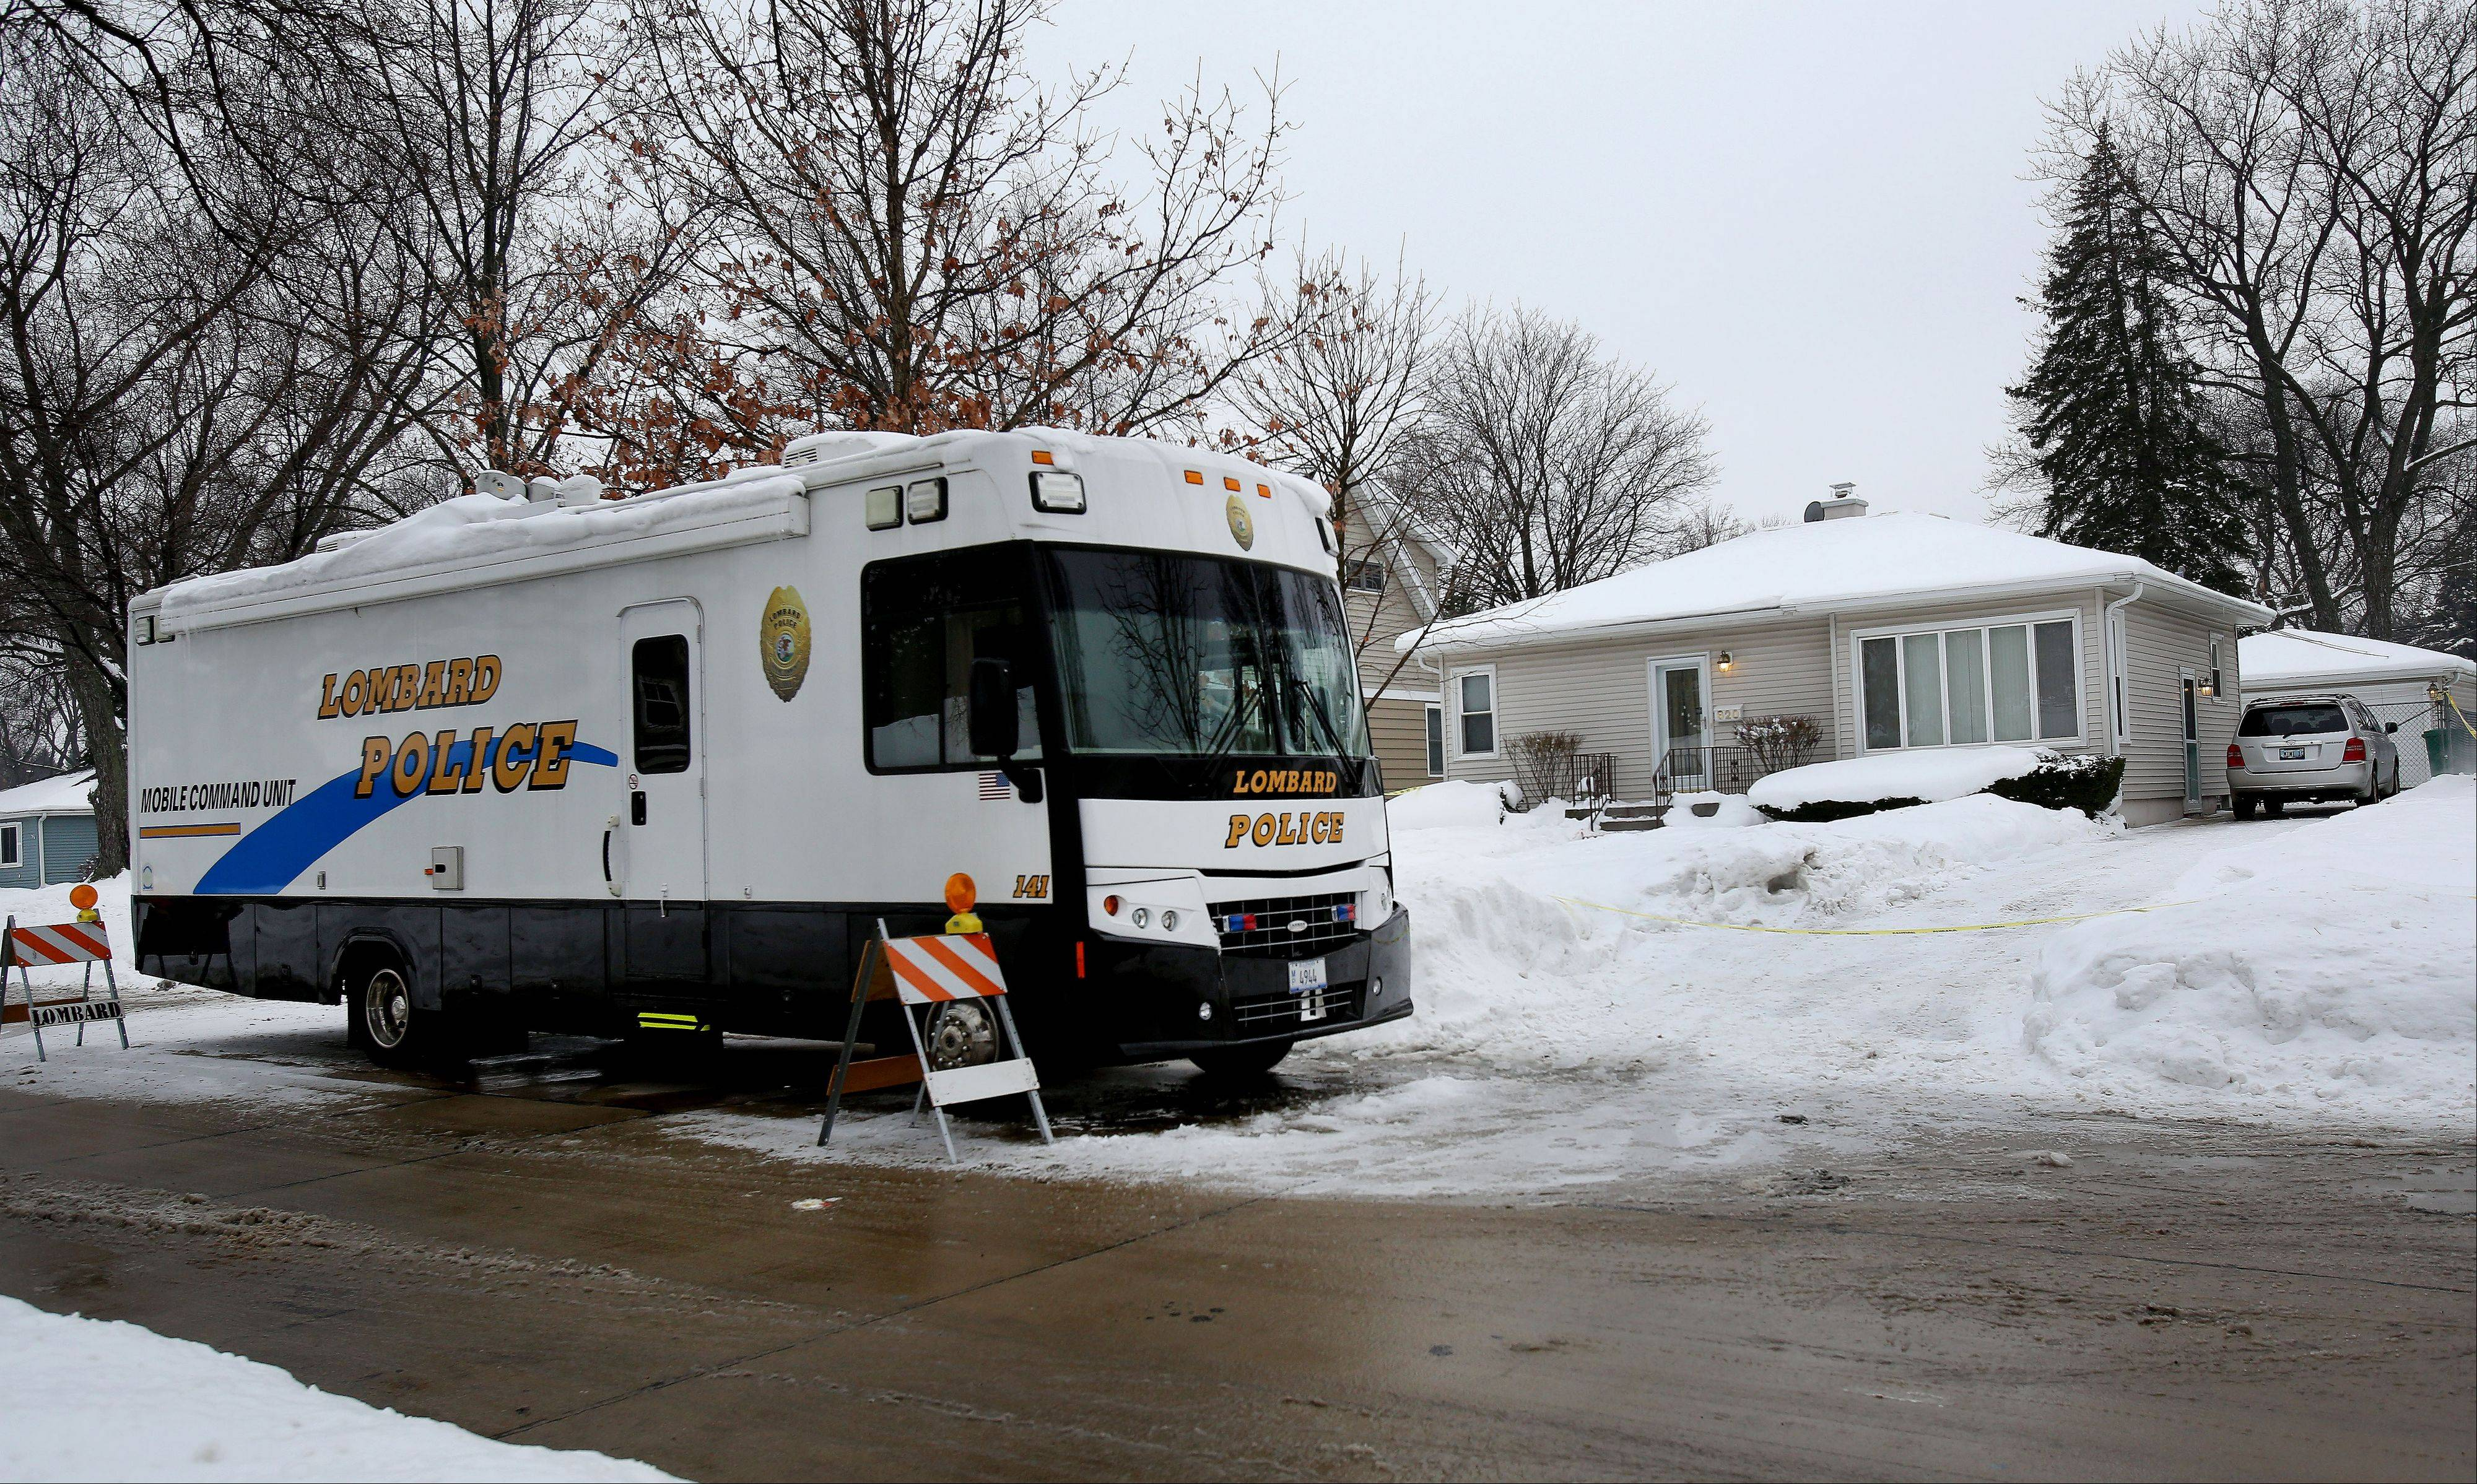 The Lombard Police mobile command unit sits Friday outside the Lombard house where Anka Miscevic, 48, is accused of attacking her husband, Zeljko Miscevic, 53, who later died.